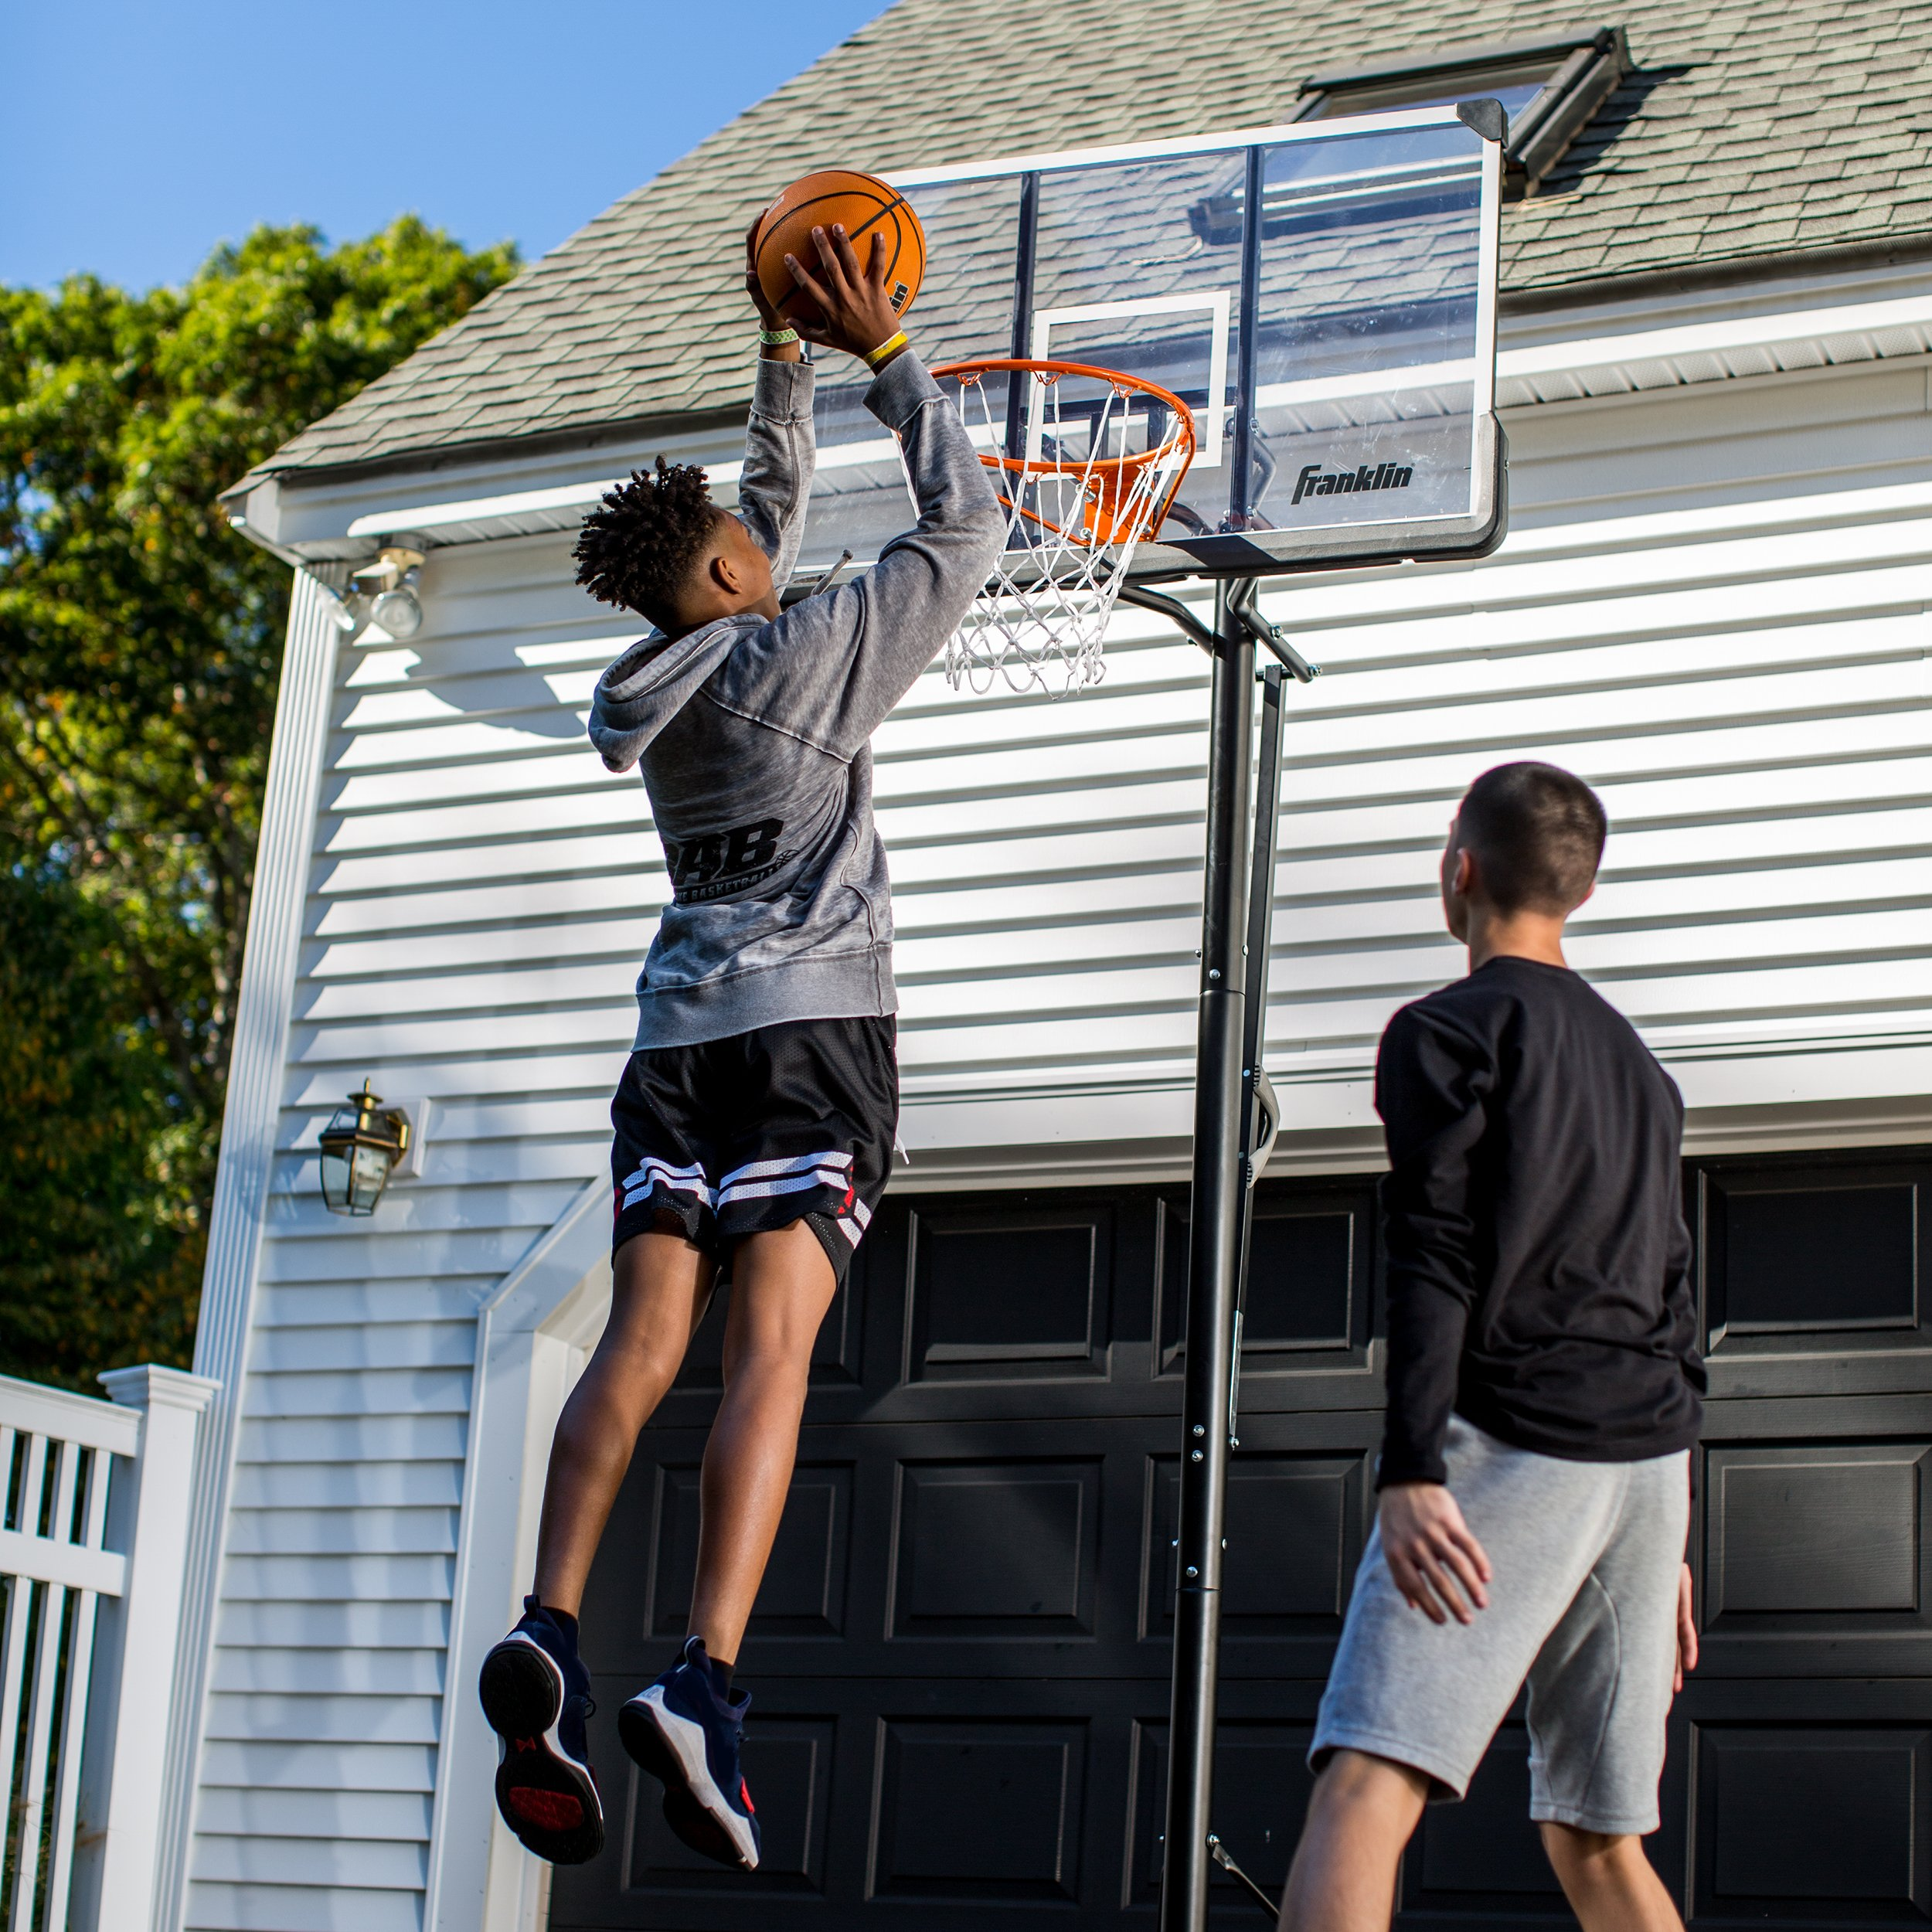 Franklin Sports Portable Basketball Hoop – Authentic Street Basketball Hoop for Adults and Kids – Adjustable Basketball Hoop with Rolling Mechanism – Play Basketball in Your Driveway by Franklin Sports (Image #7)